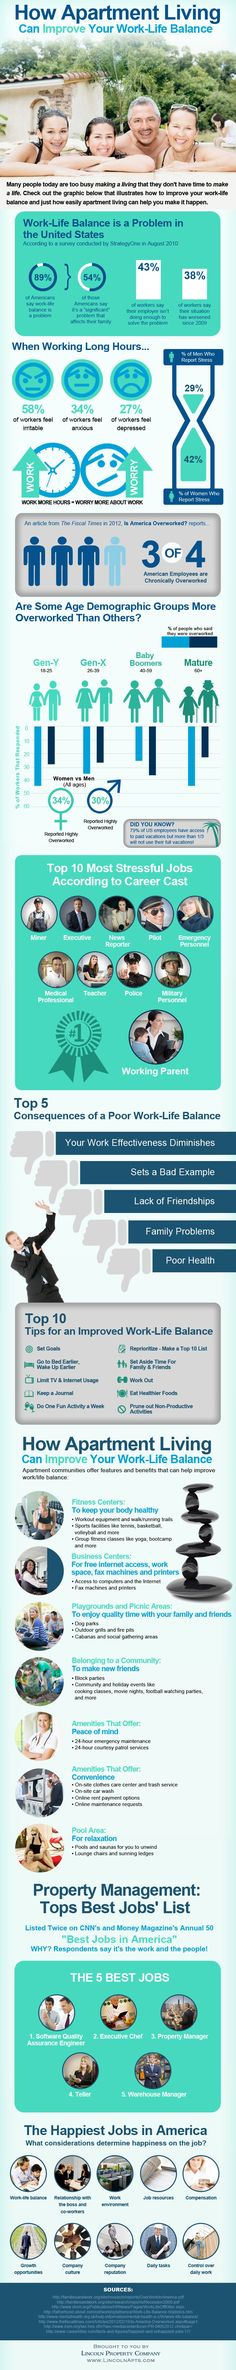 "Our infographic titled ""How Apartment Living Can Improve Your Work-Life Balance"" shows how living in a supportive apartment community can help offset the stress of work."